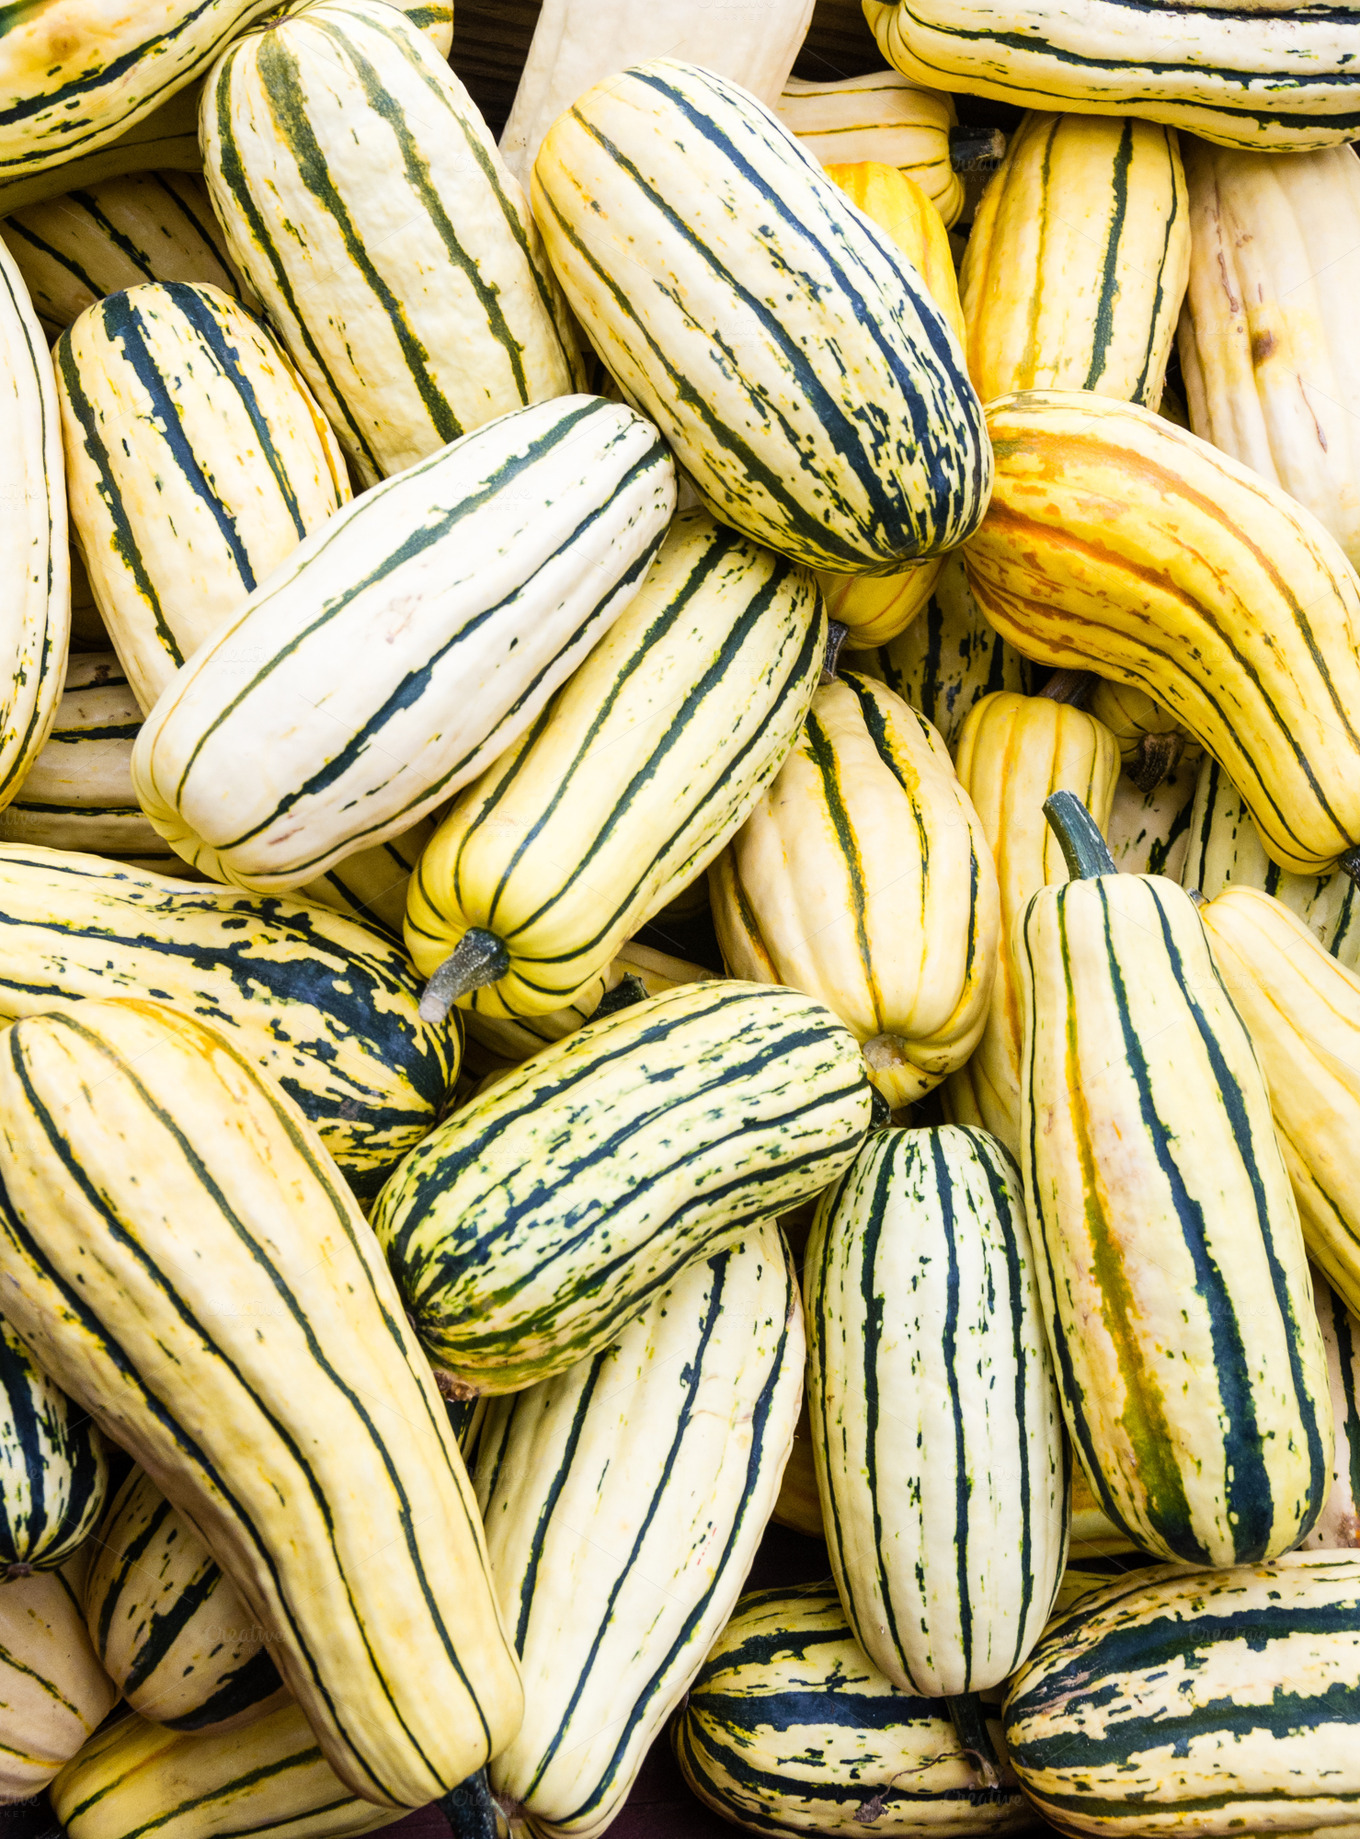 Delicata squash on display ~ Food & Drink Photos on Creative Market